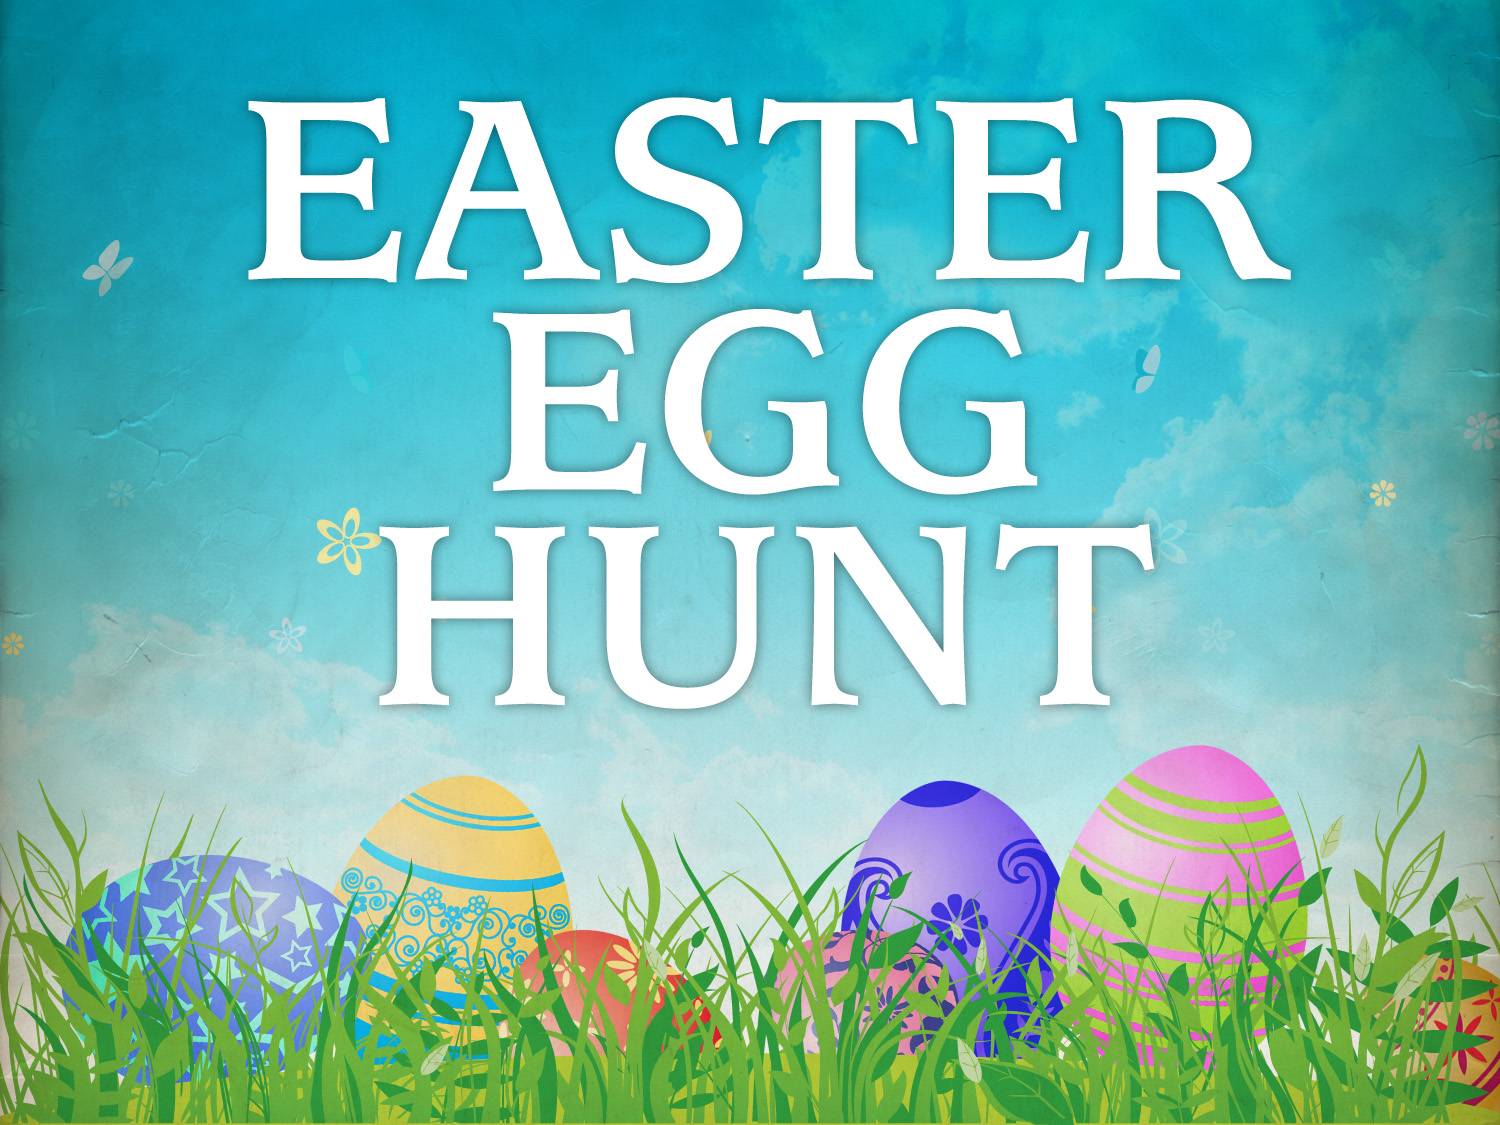 Church Easter Egg Hunt Clip Art Pictures to pin on Pinterest